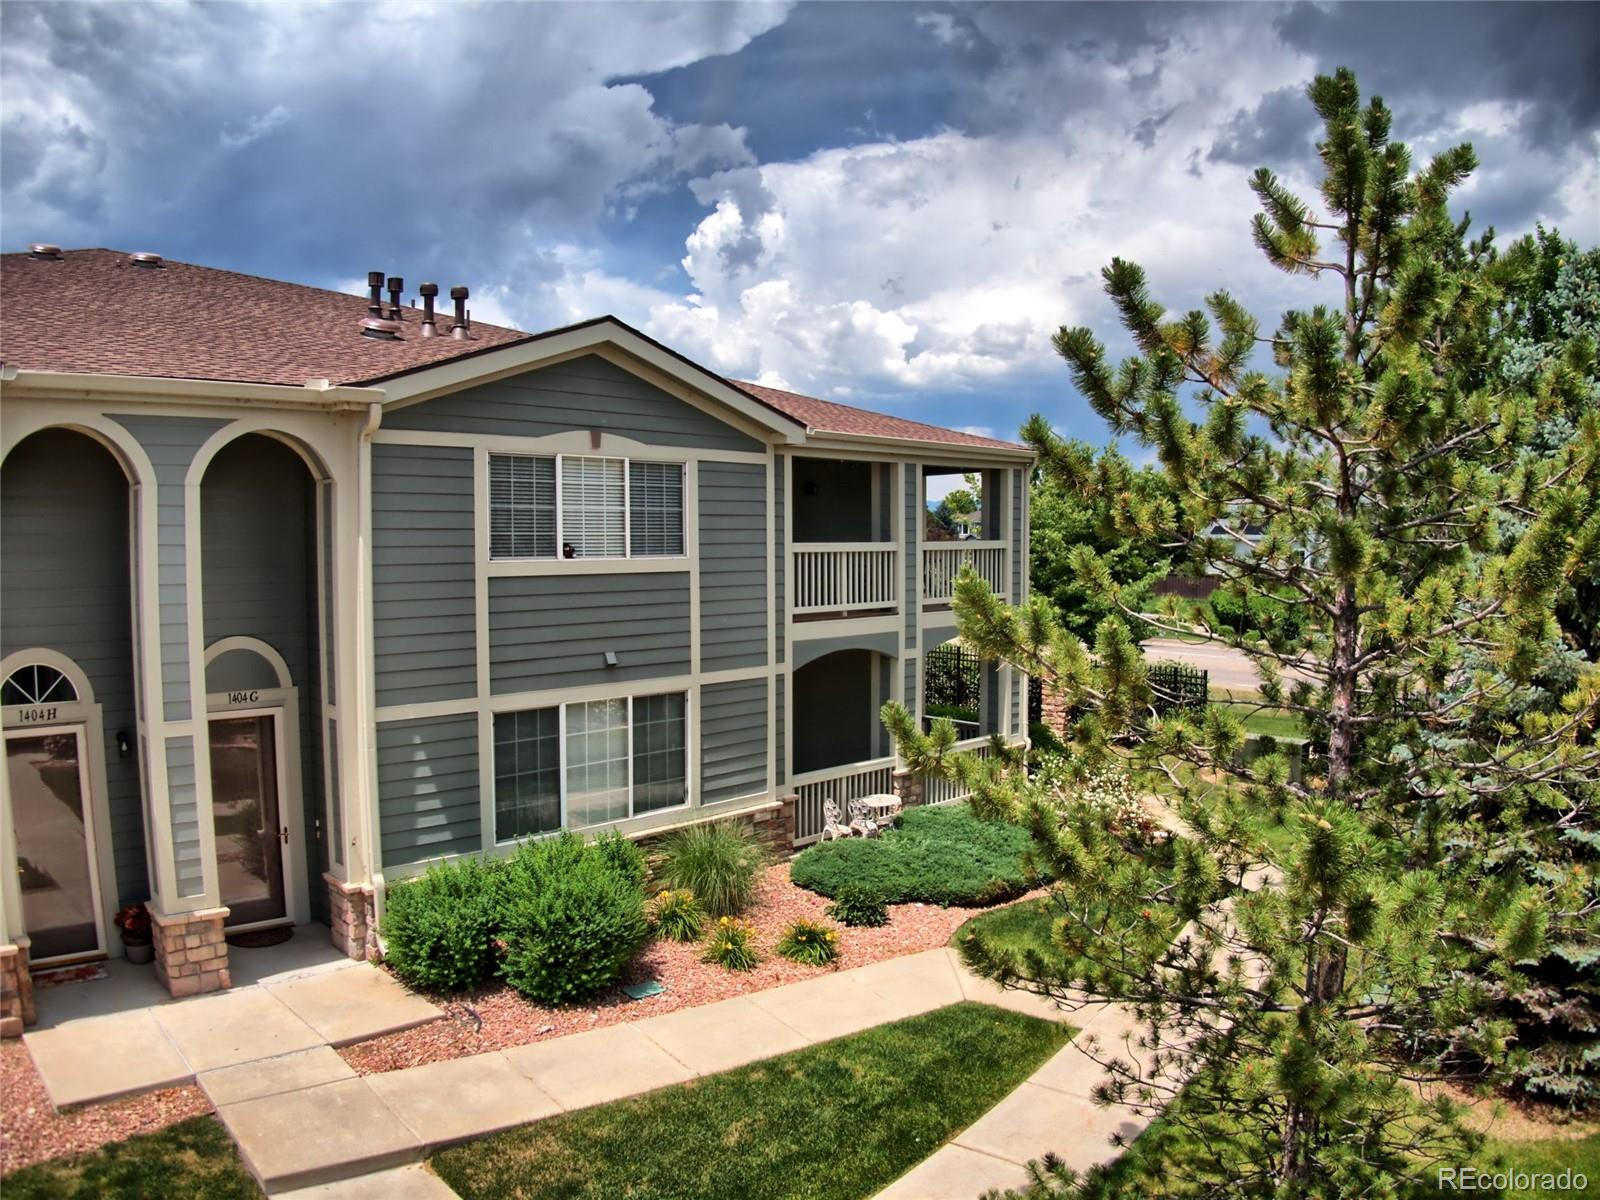 MLS# 2589800 - 1404 Whitehall Drive #17G, Longmont, CO 80504